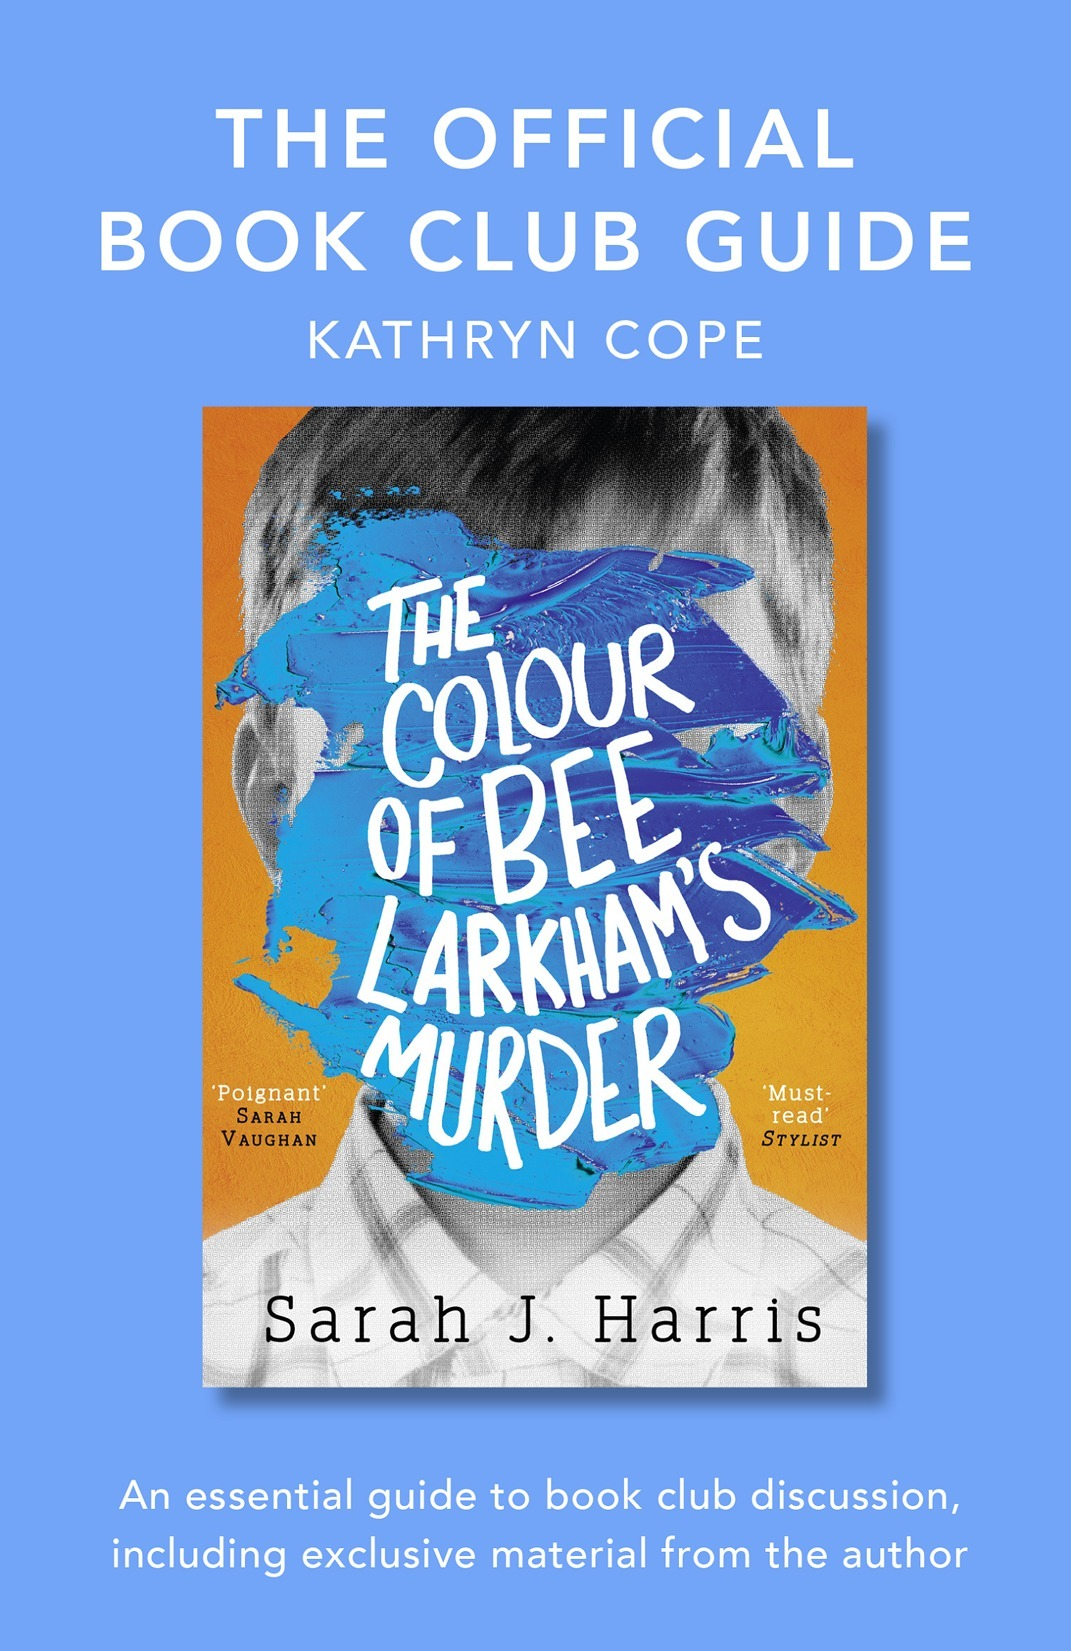 Kathryn Cope The Official Book Club Guide: The Colour of Bee Larkham's Murder the official german beer guide